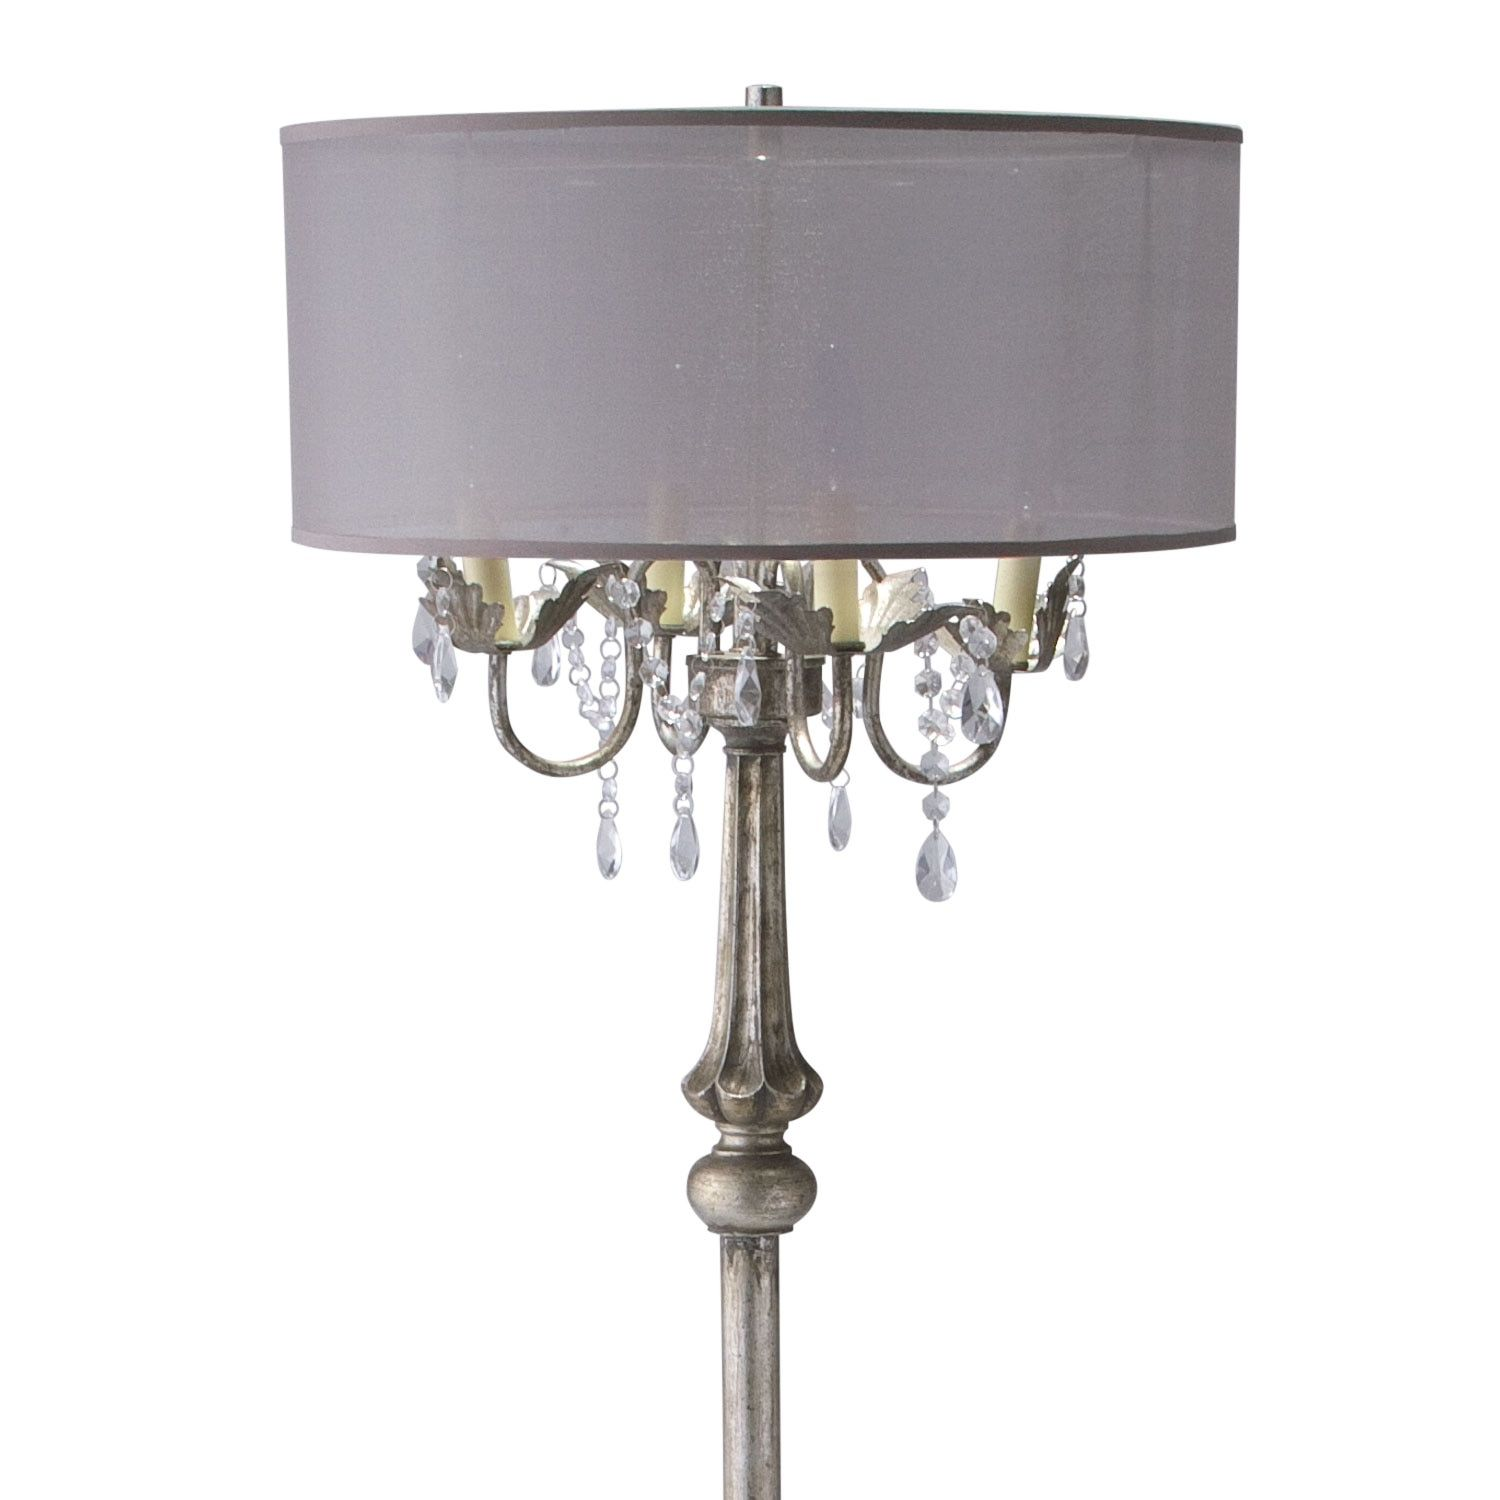 Chandi Lumination The Chandelier floor lamp sparkles with